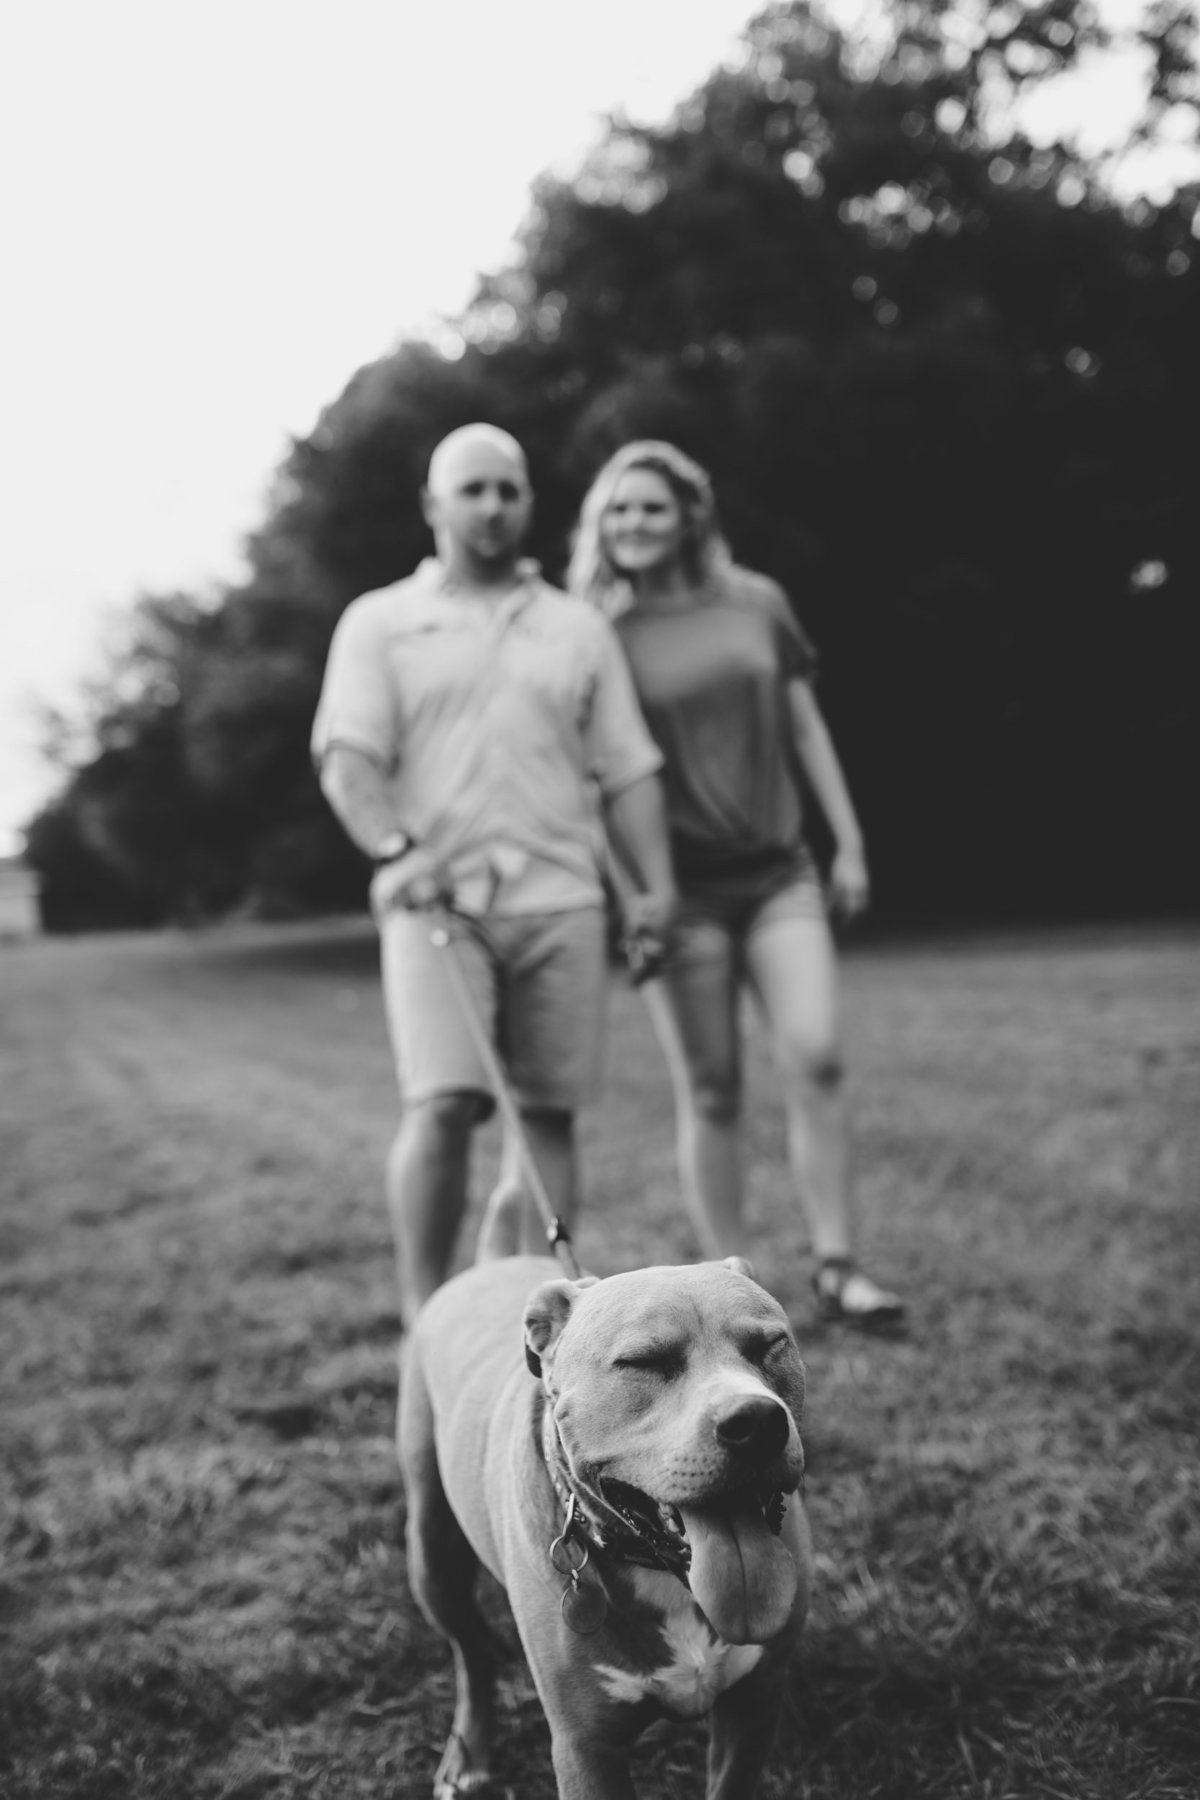 Pet photographer specializing in lifestyle photos with you and your dog in North Florida.